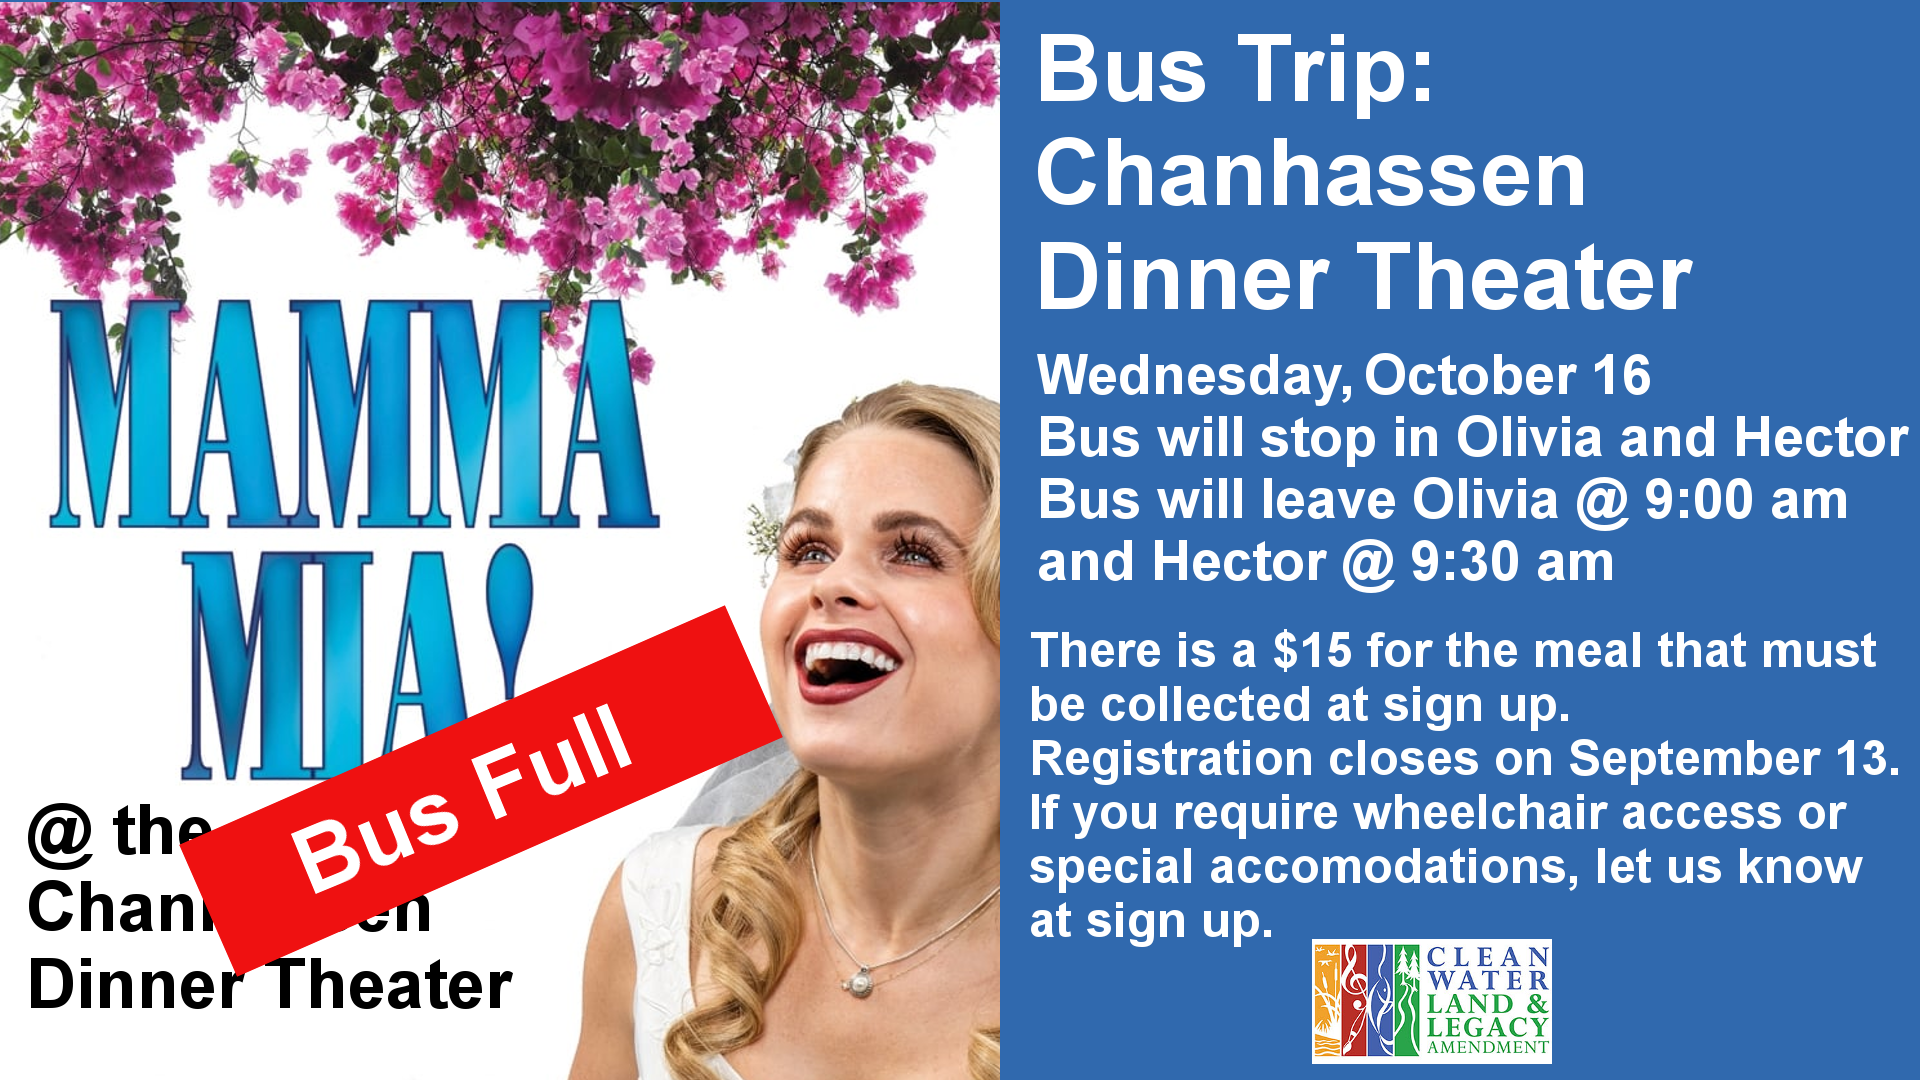 Bus Trip: Chanhassen Dinner Theater Wednesday,  October 16  Bus will stop in Olivia and Hector Bus will leave Olivia @ 9:00 am and Hector @ 9:30 am There is a $15 for the meal that must be collected at sign up. Registration closes on September 13. If you require wheelchair access or special accomodations, let us know at sign up. This project is funded in part or in whole with money from Minnesota's Arts and Cultural Heritage fund